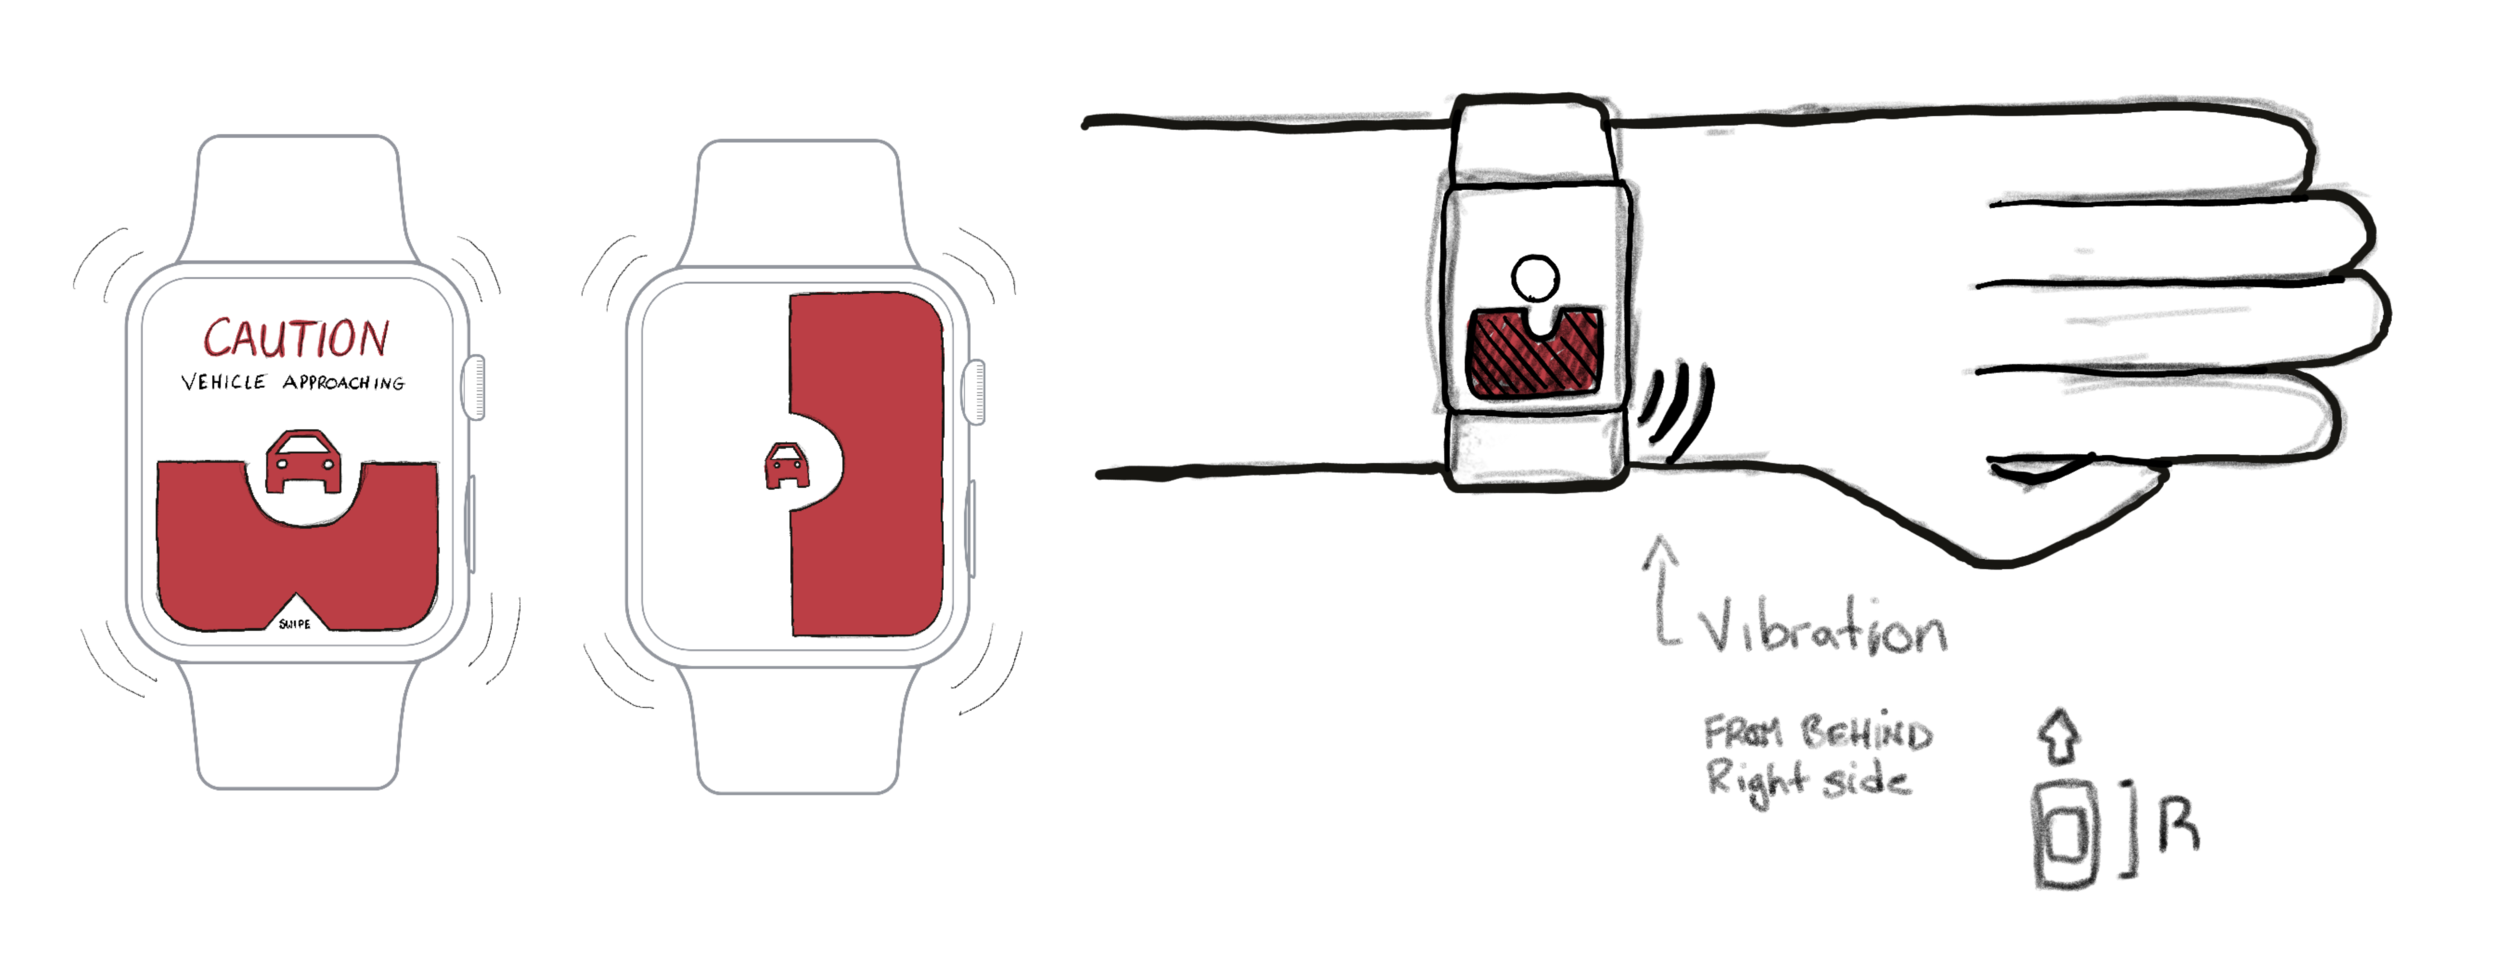 More sketches that demonstrate how an alert could potentially work.